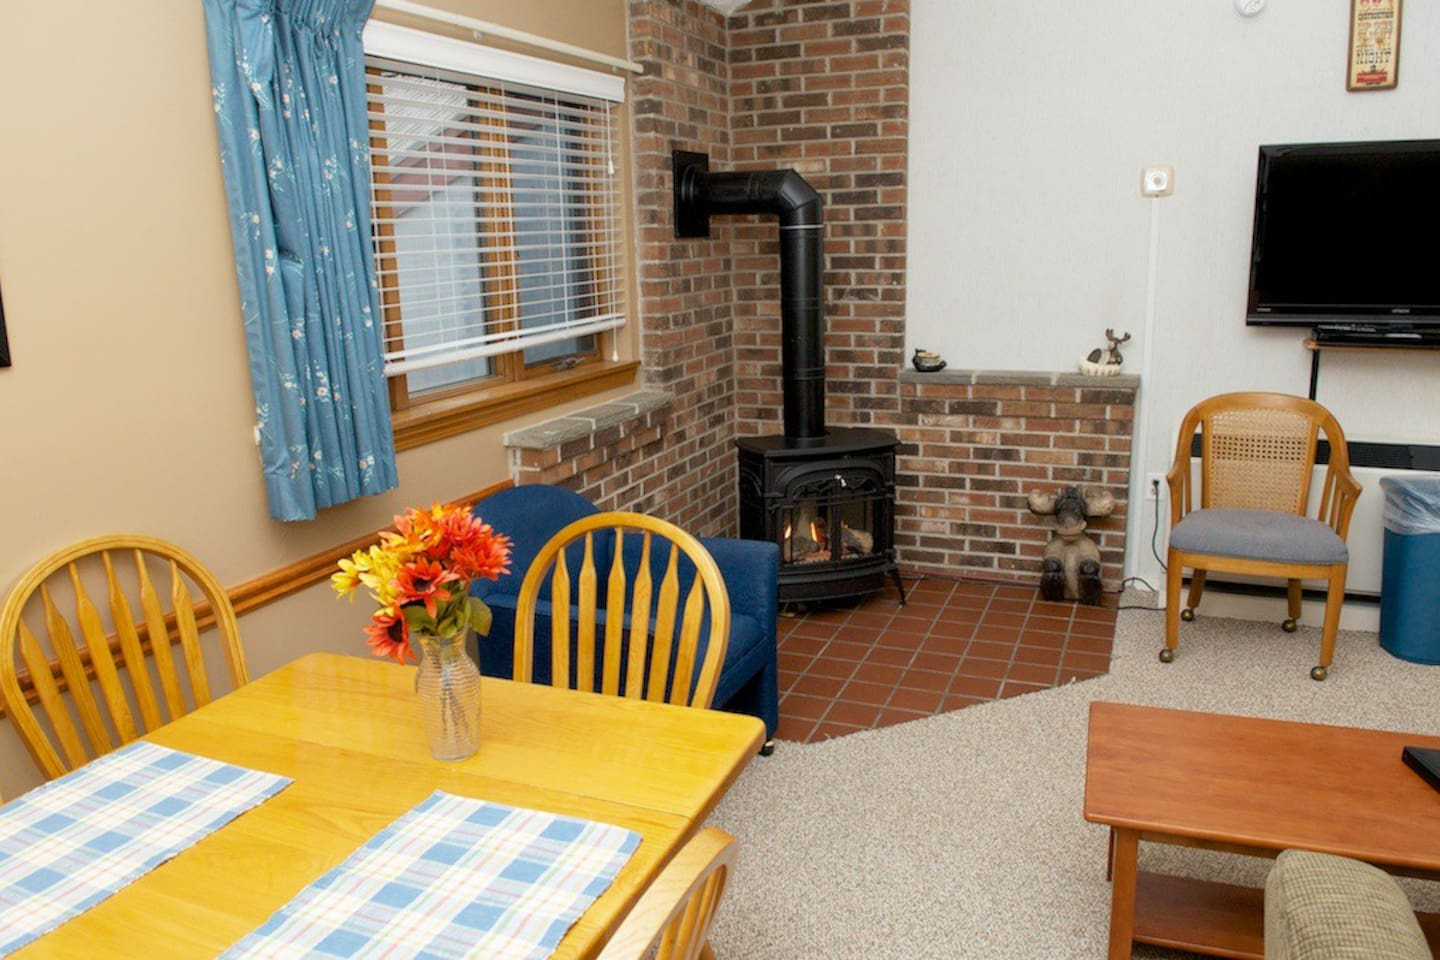 Dinning and gas Stove, warm and cozy!!